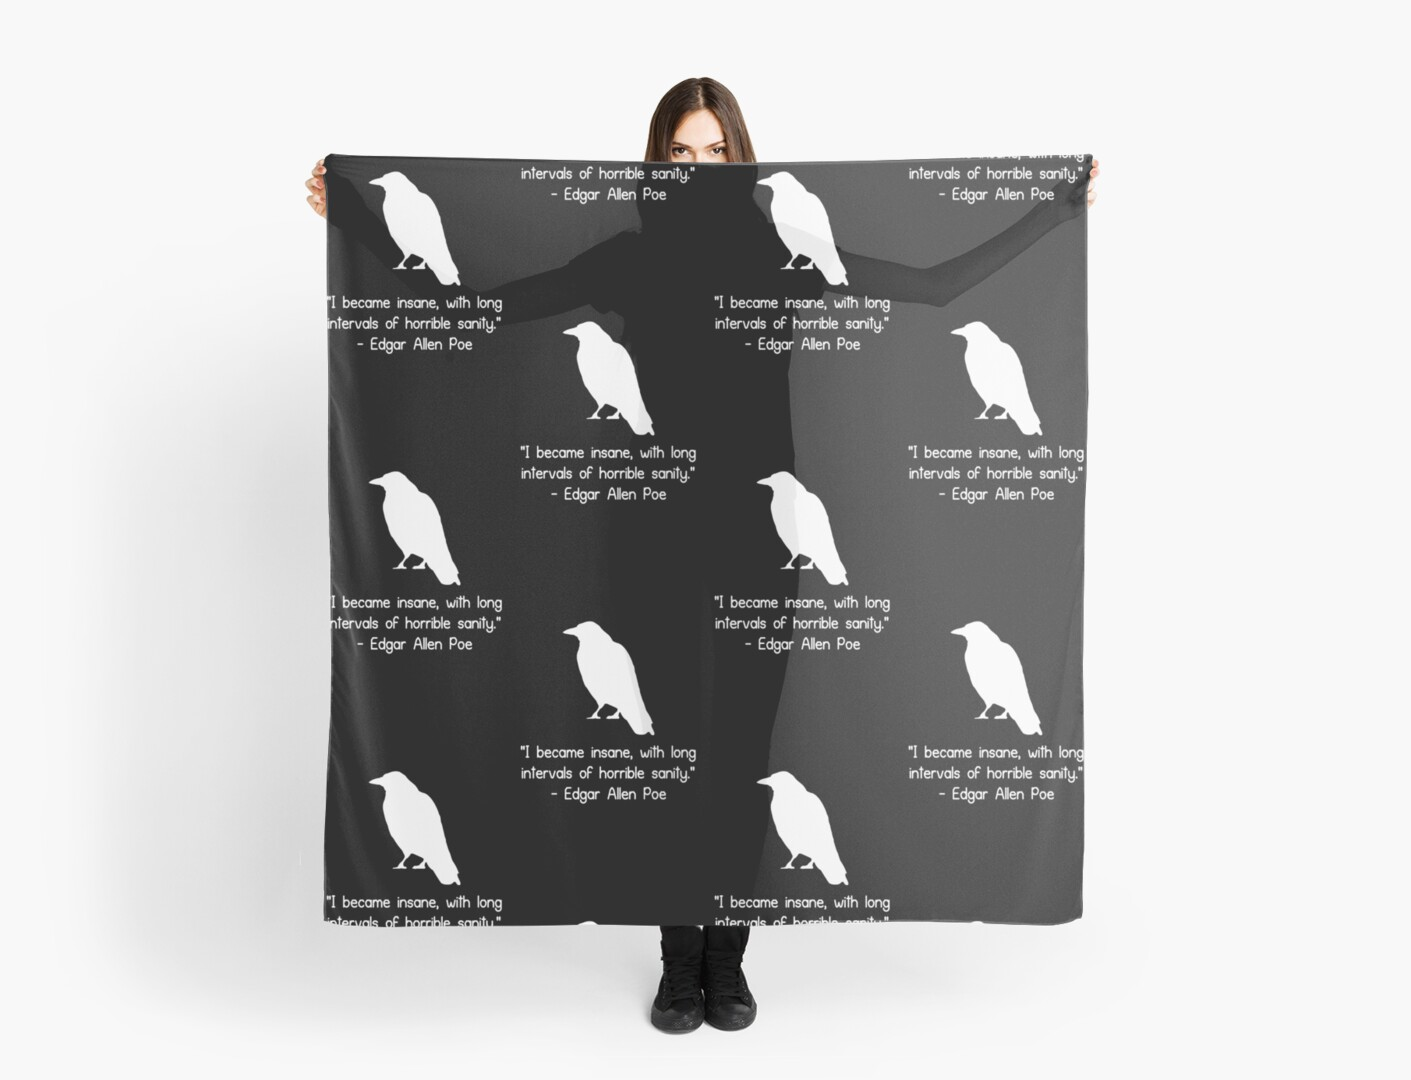 i became insane edgar allen poe quote geek funny nerd scarves by i became insane edgar allen poe quote geek funny nerd